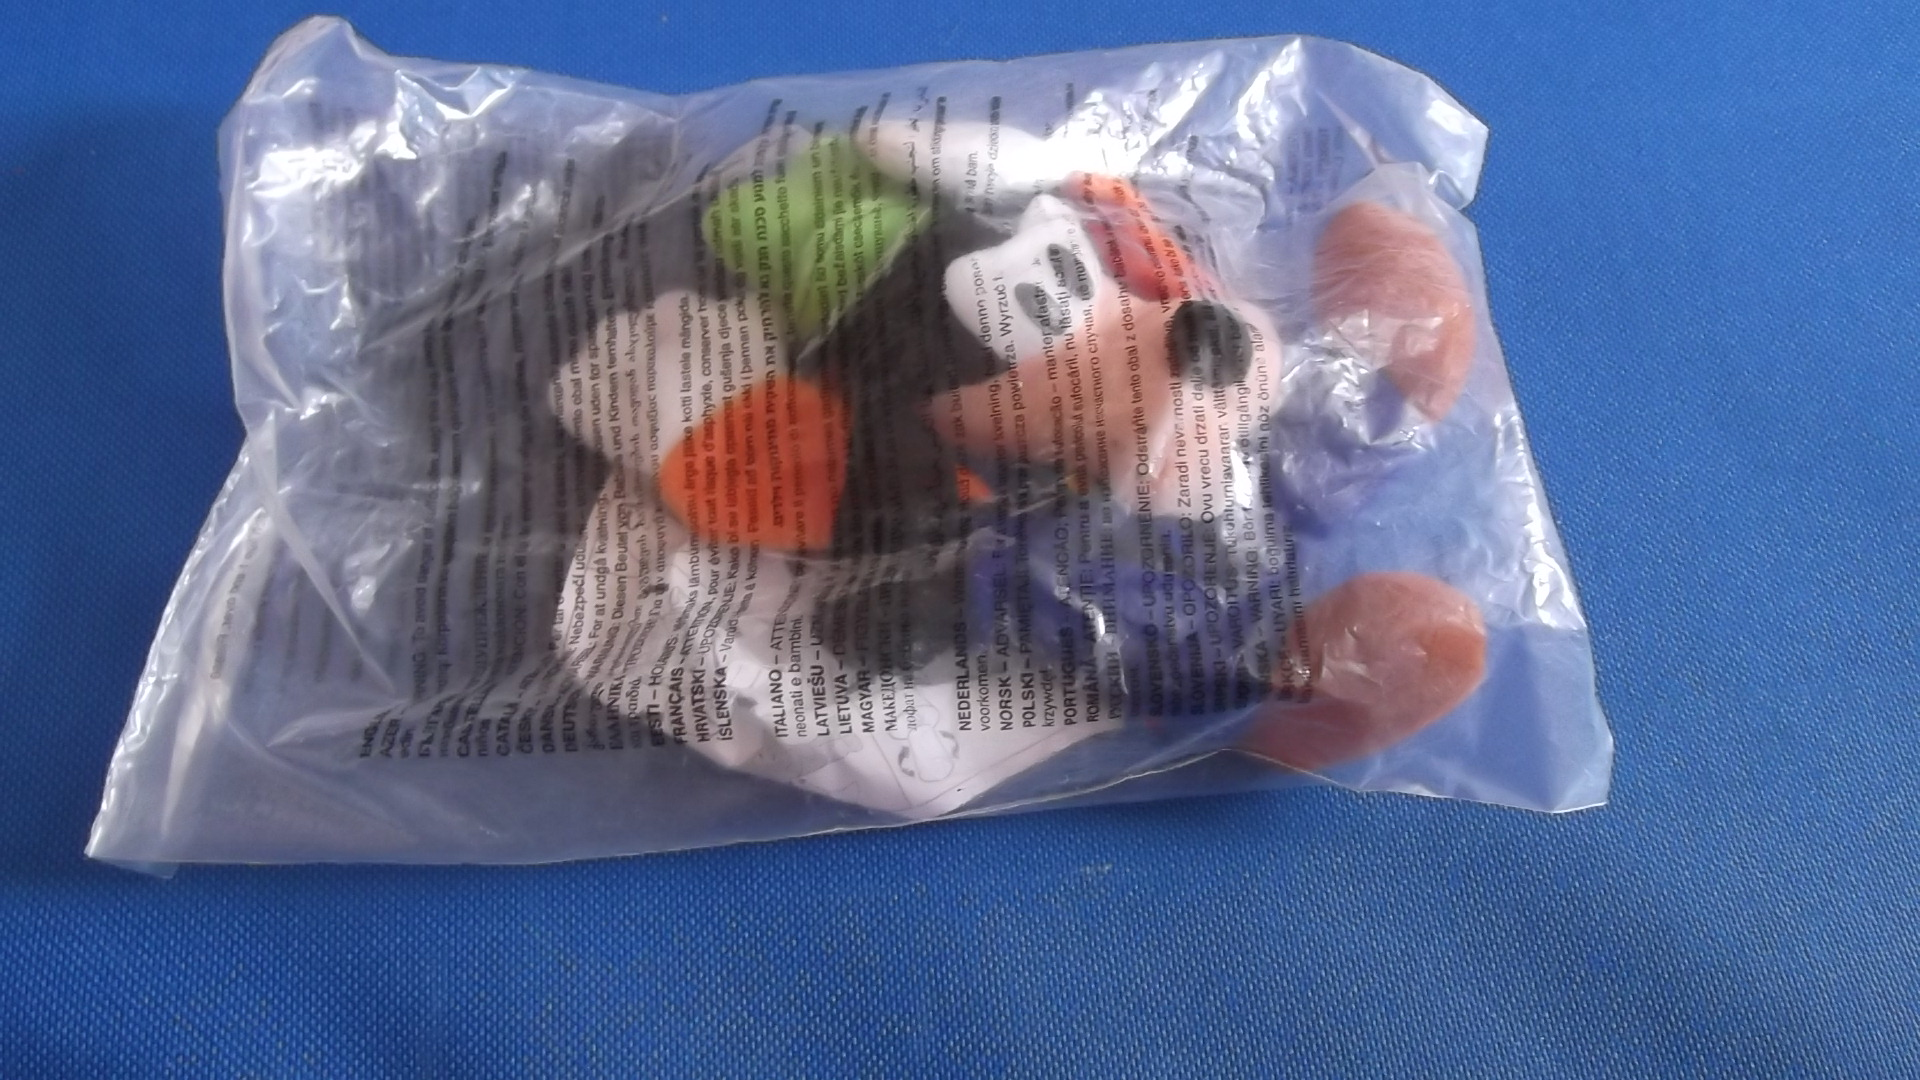 McDonalds Disneyland Paris Goofy Toy From 2001 New